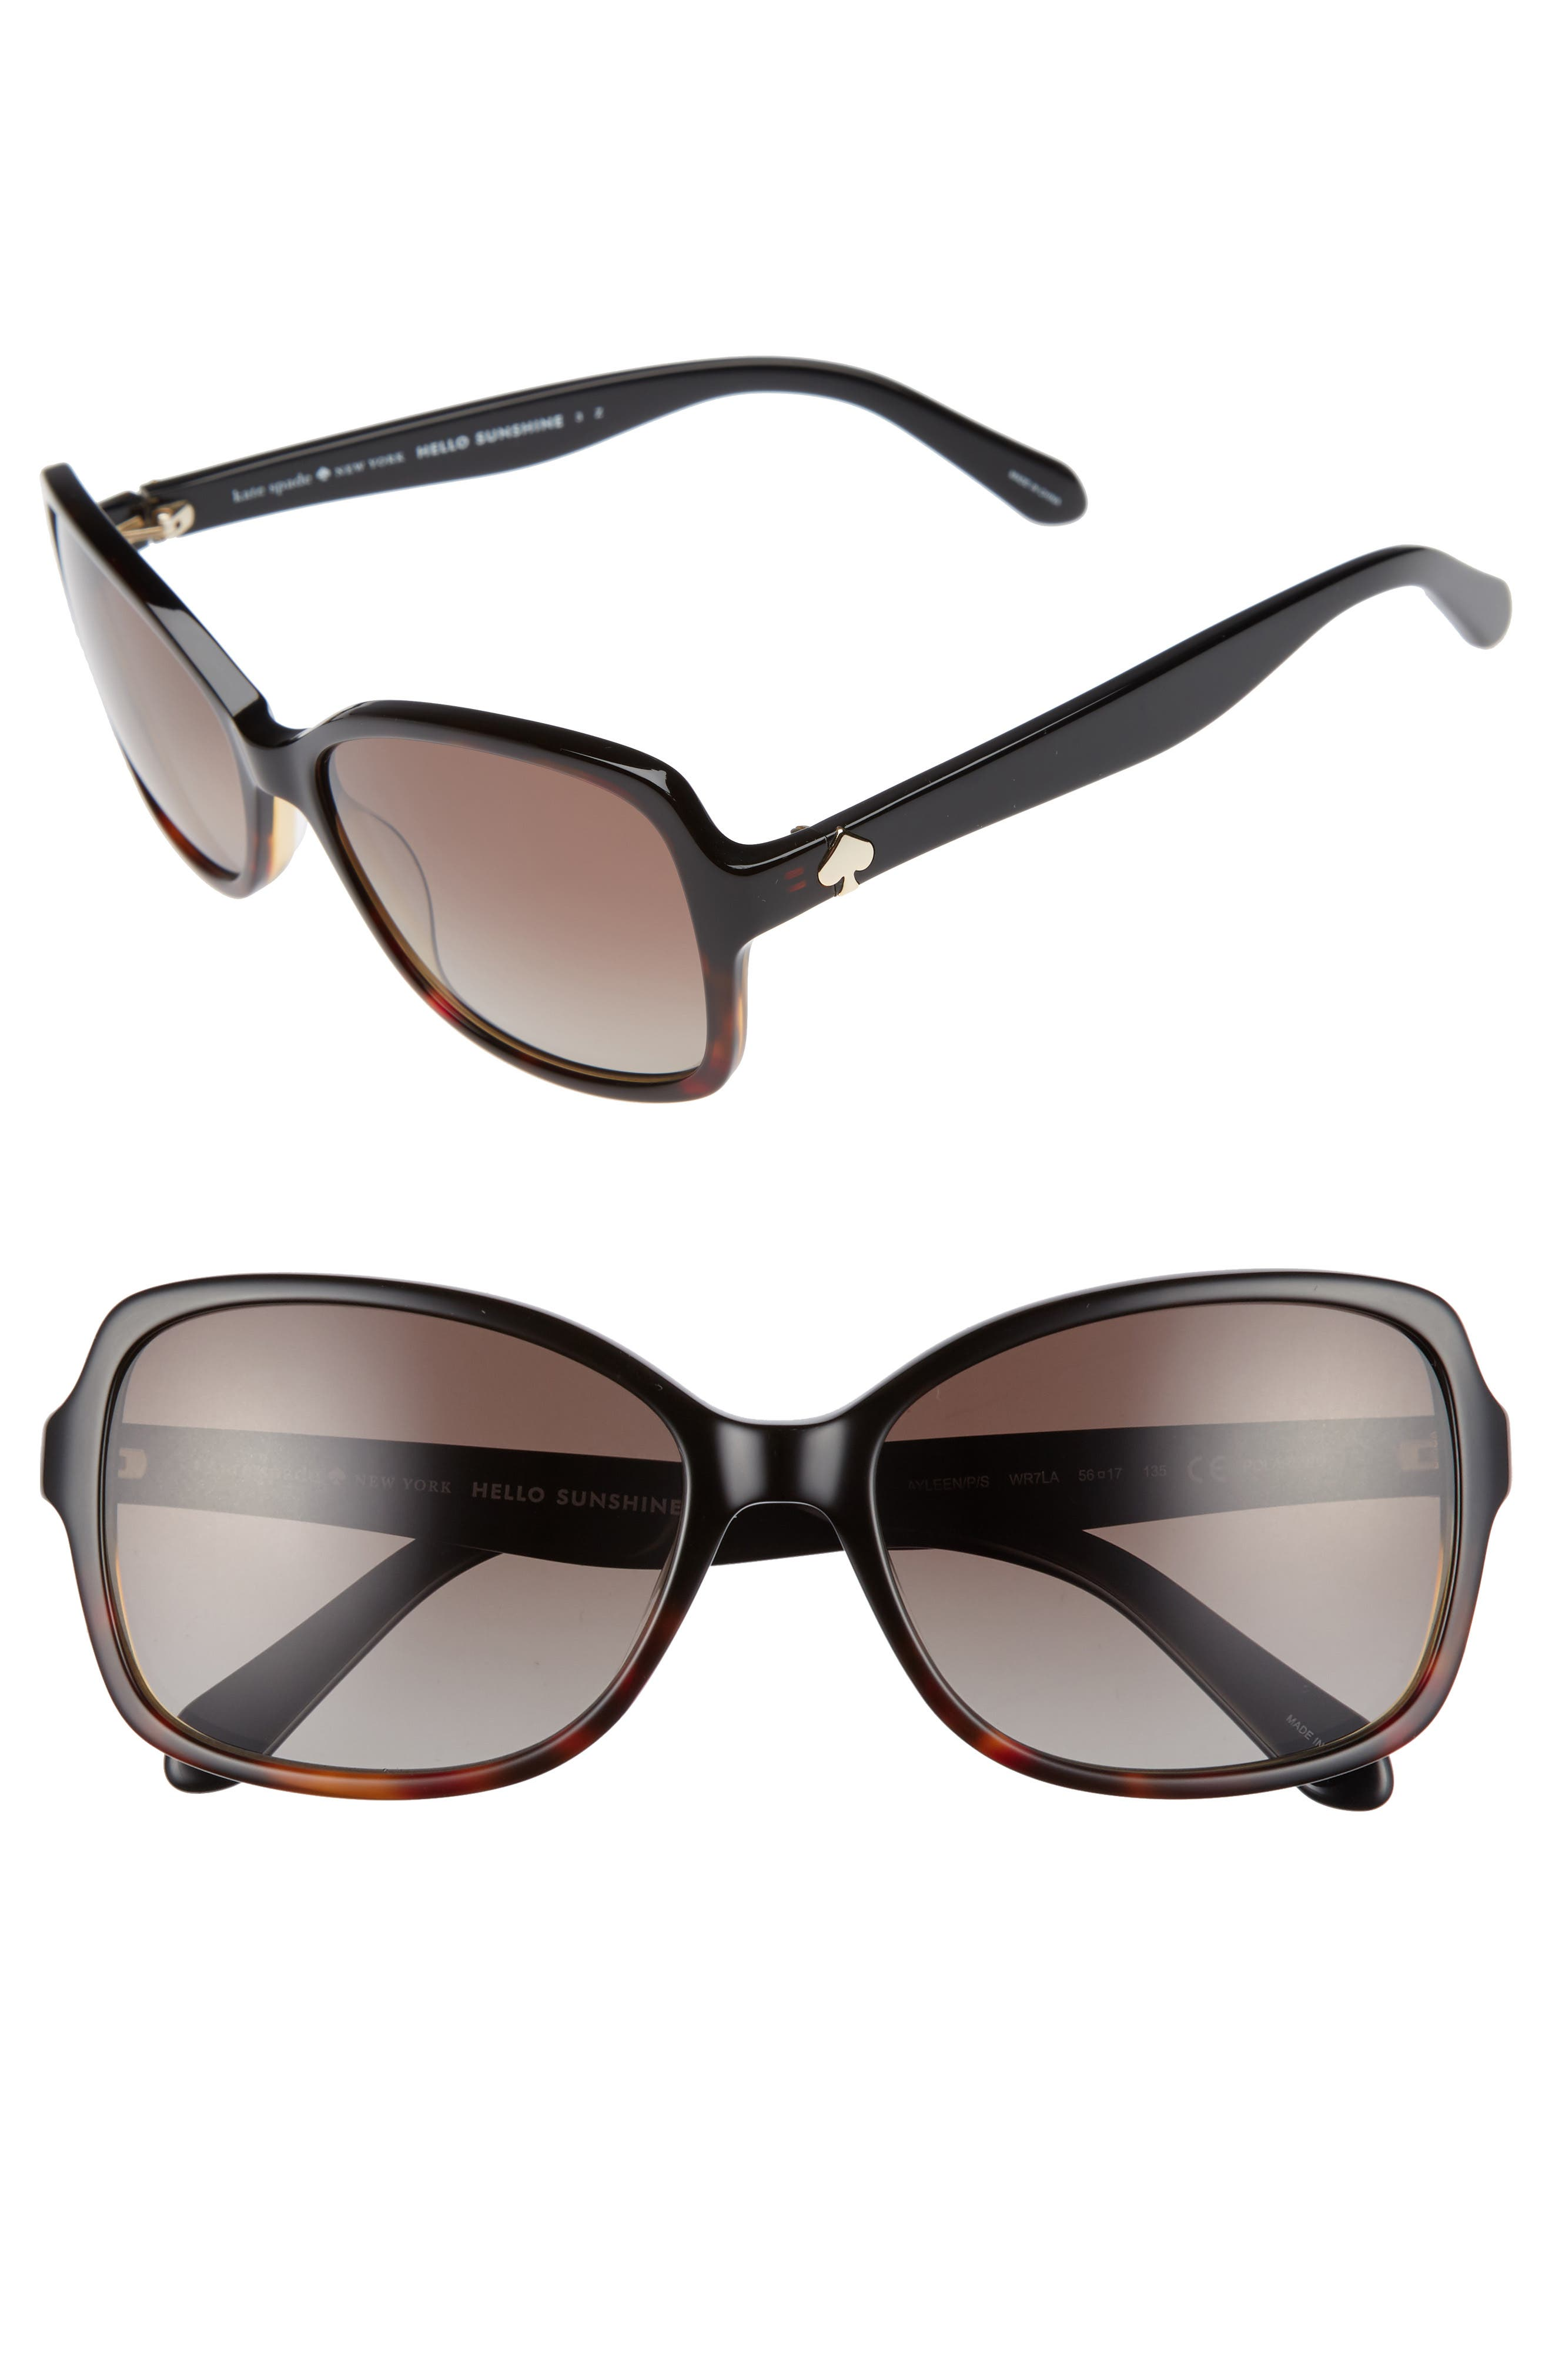 KATE SPADE NEW YORK ayleen 56mm polarized sunglasses